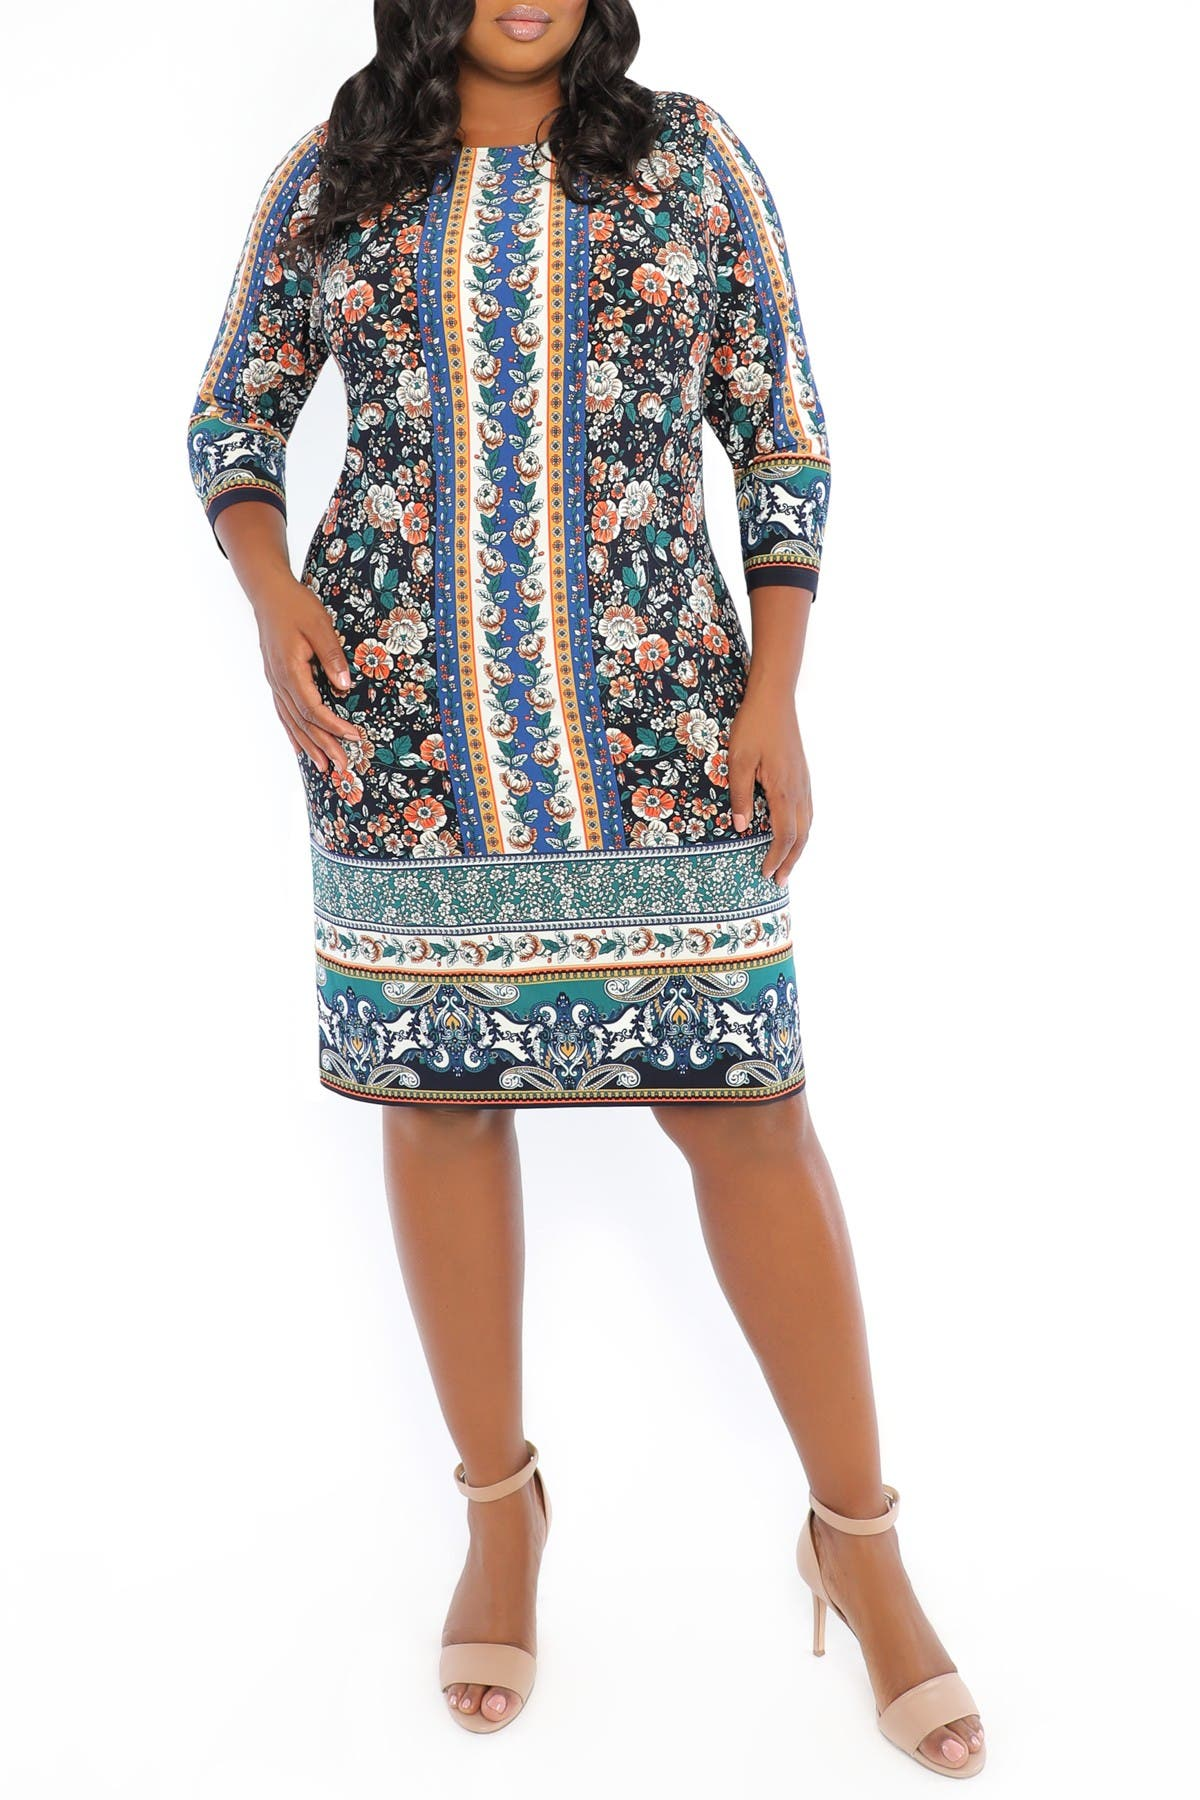 Image of London Times 3/4 Length Sleeve Floral Print Shift Dress